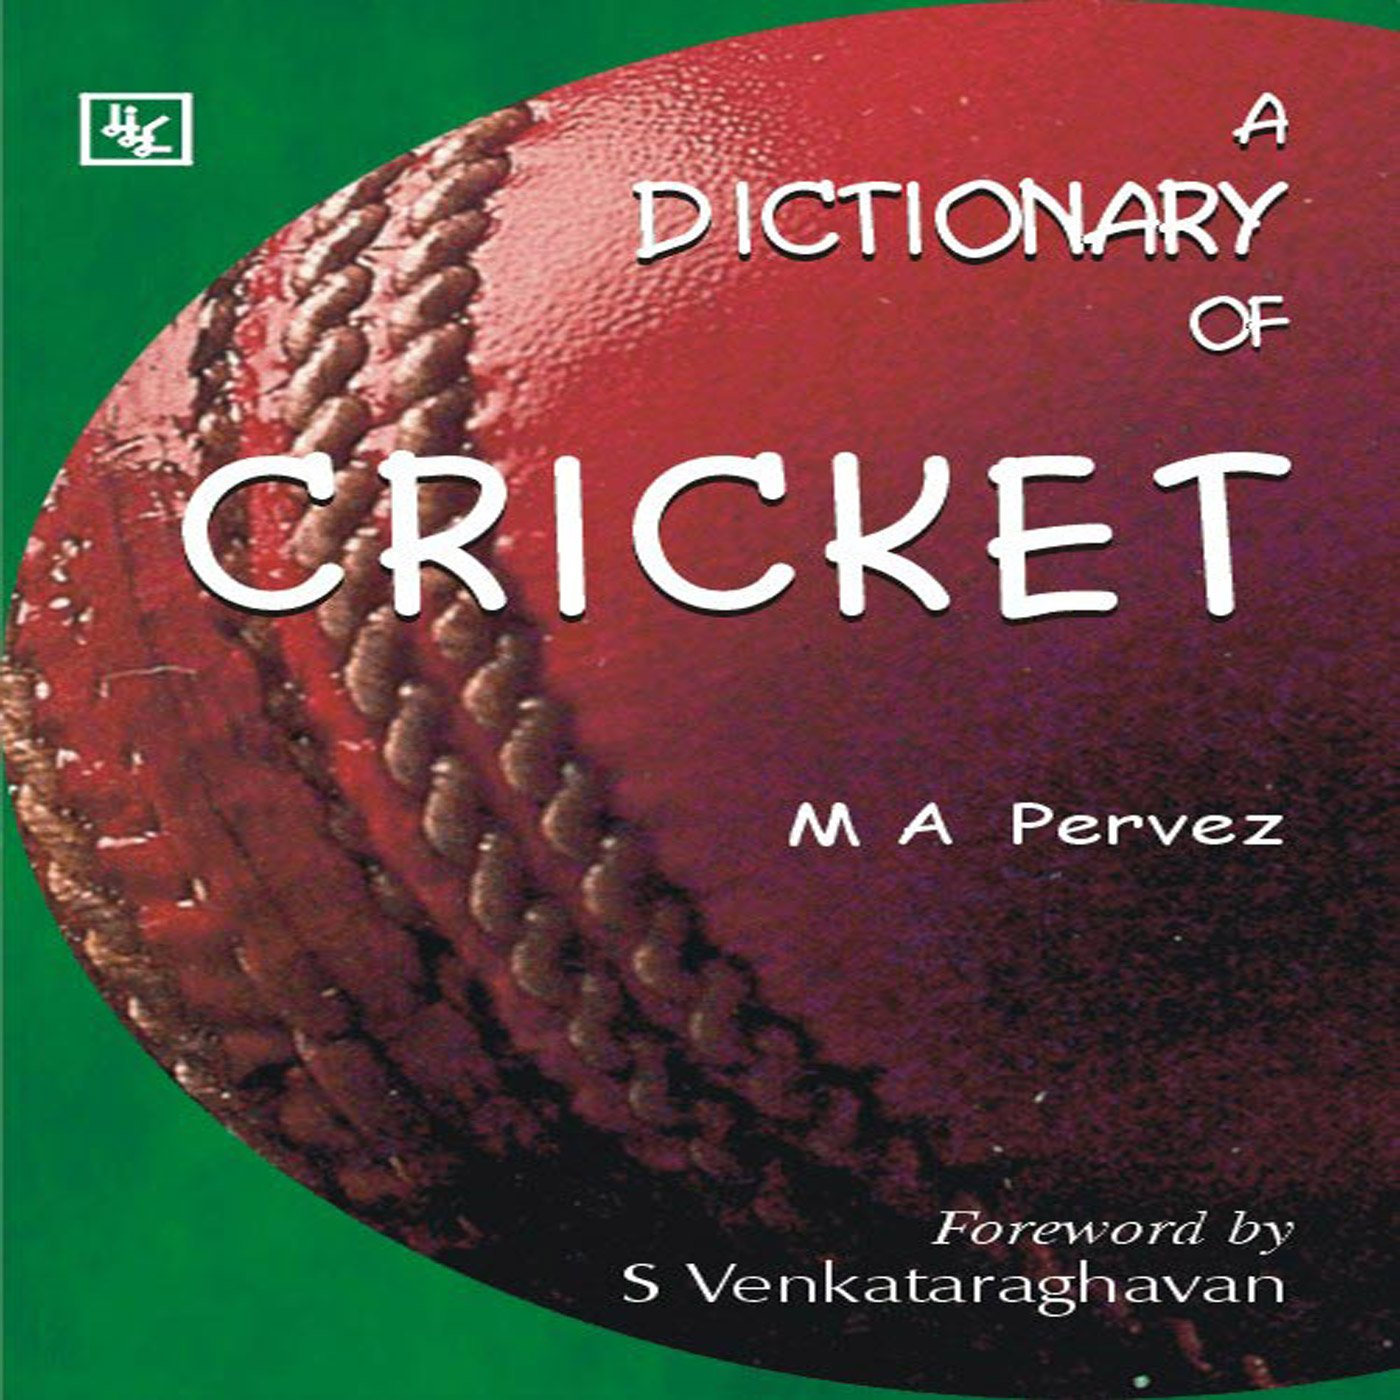 Image OfA Dictionary Of Cricket (English Edition)